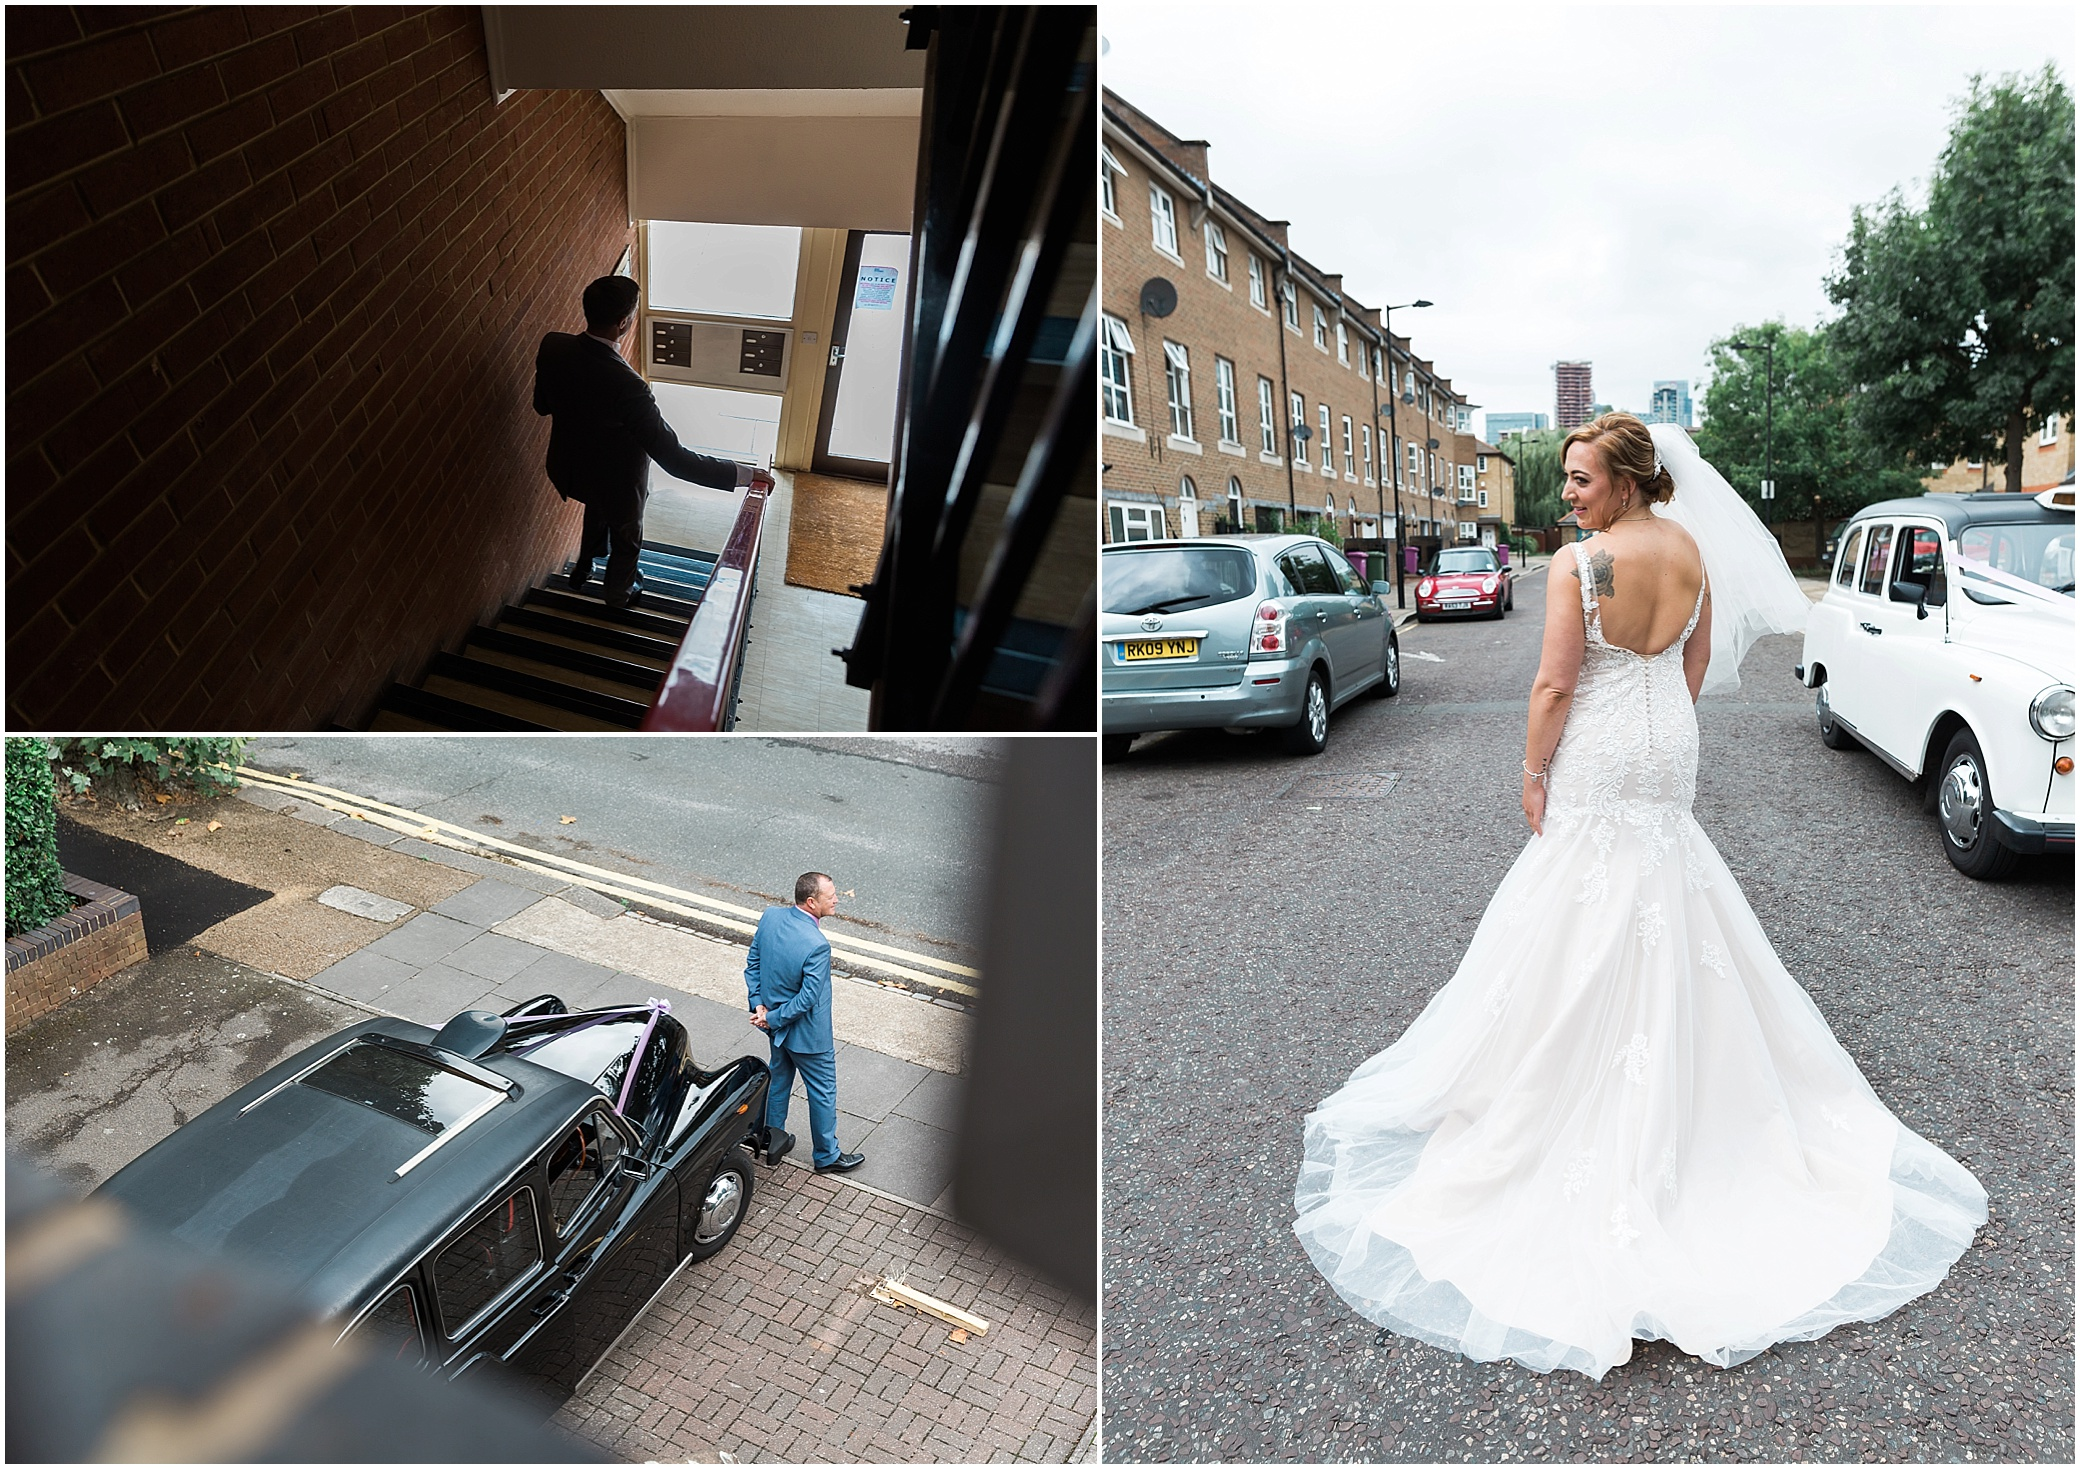 Bride and groom getting ready for their wedding in London